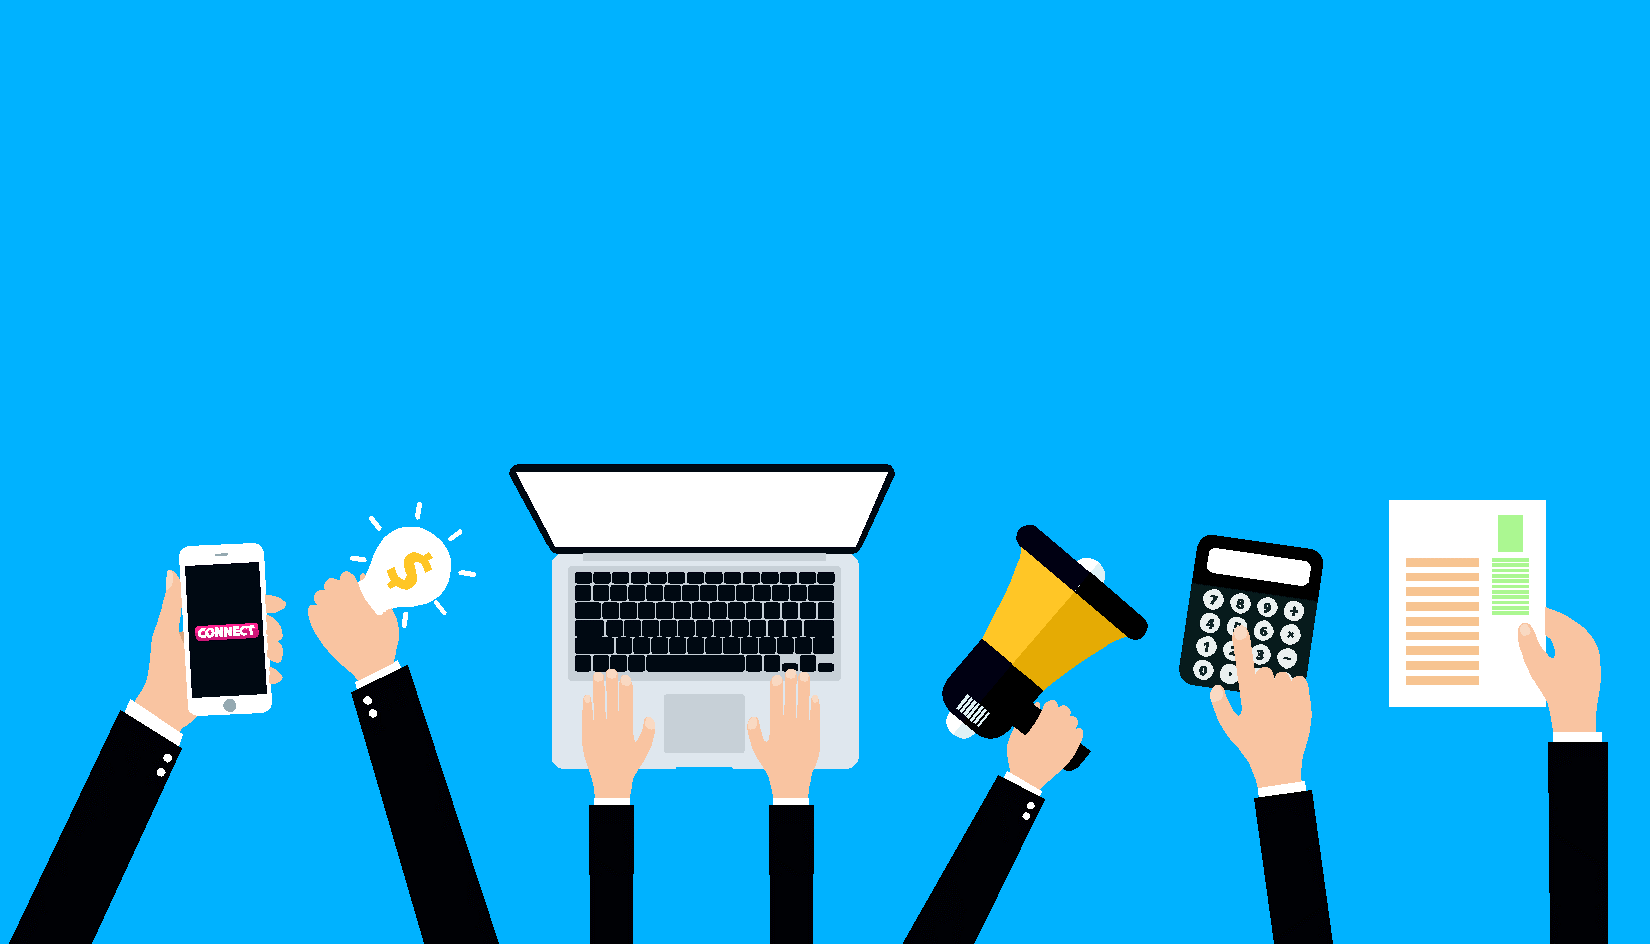 The Future of Marketing - Six Trends for 2017